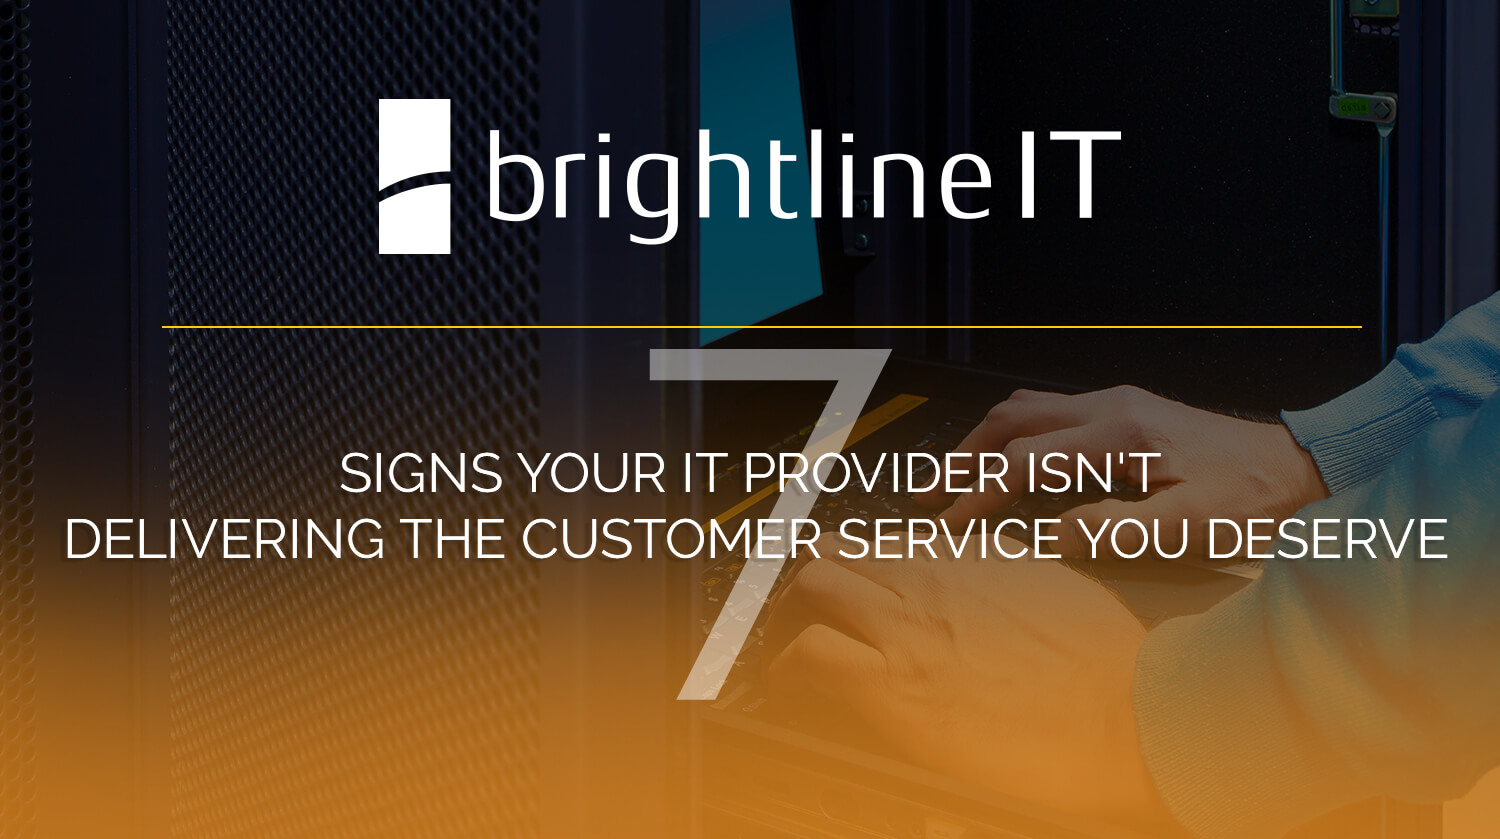 7 Signs Your IT Provider Isn't Delivering the Customer Service You Deserve